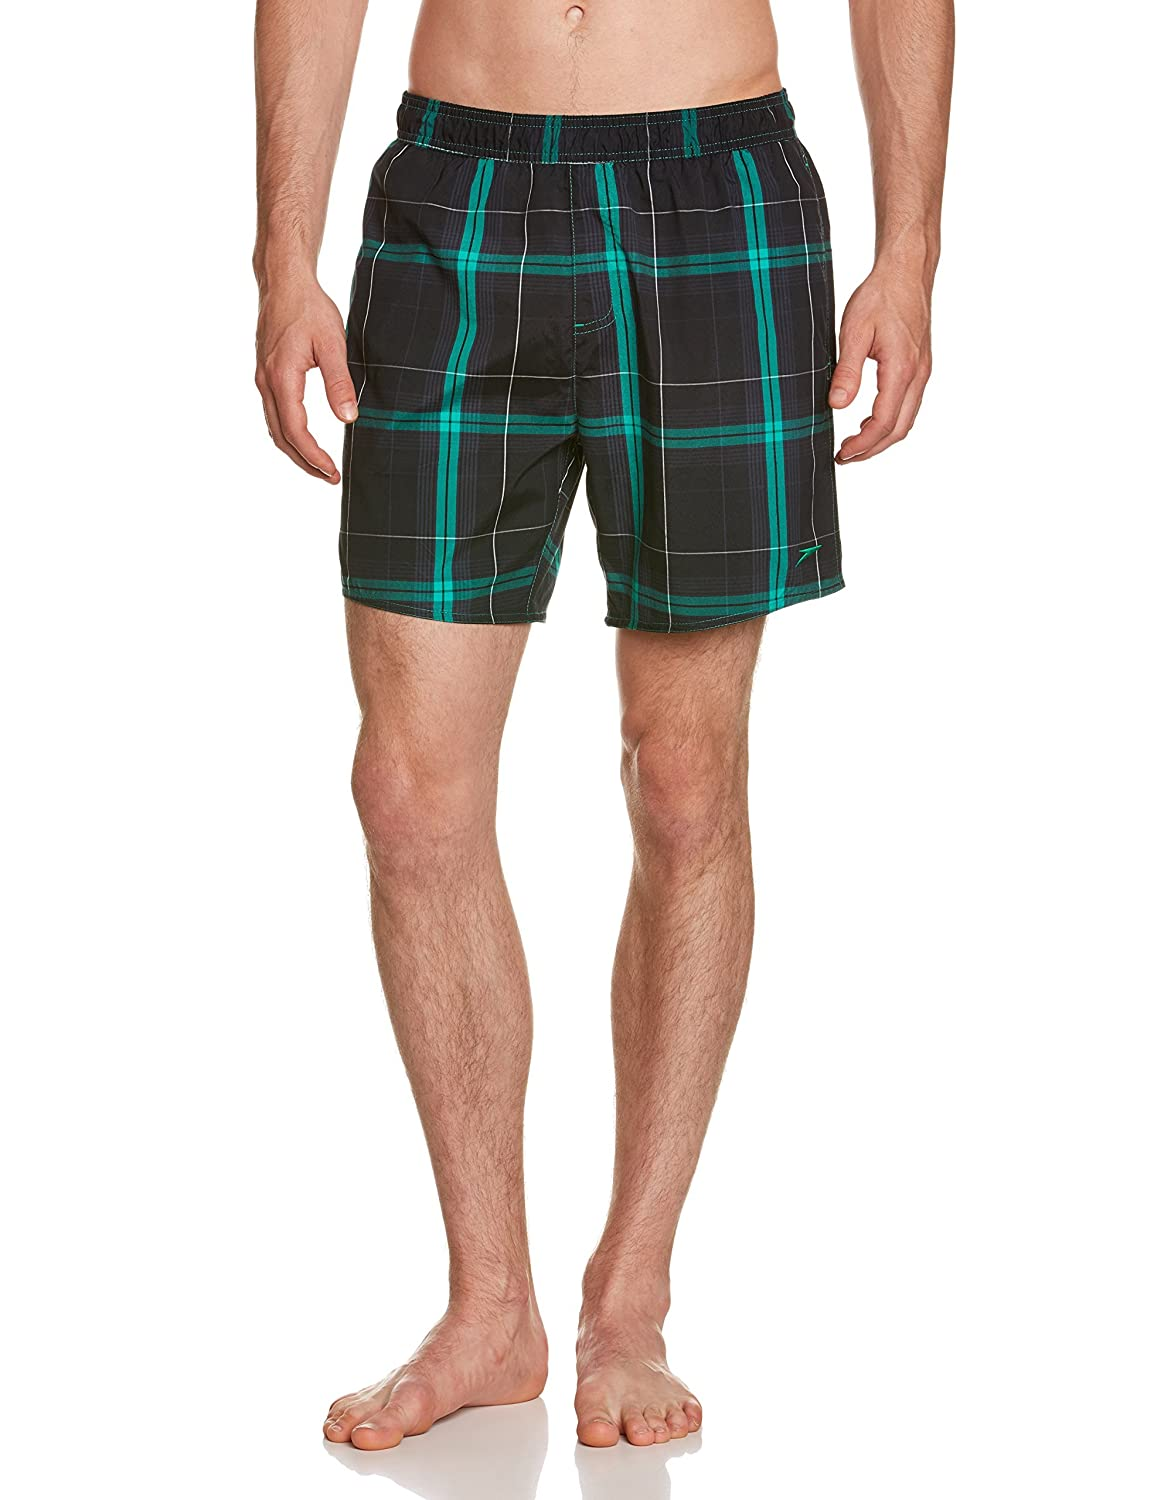 Speedo Check Leisure Men's 16-Inch Swimming Trunks, Yarn Dyed